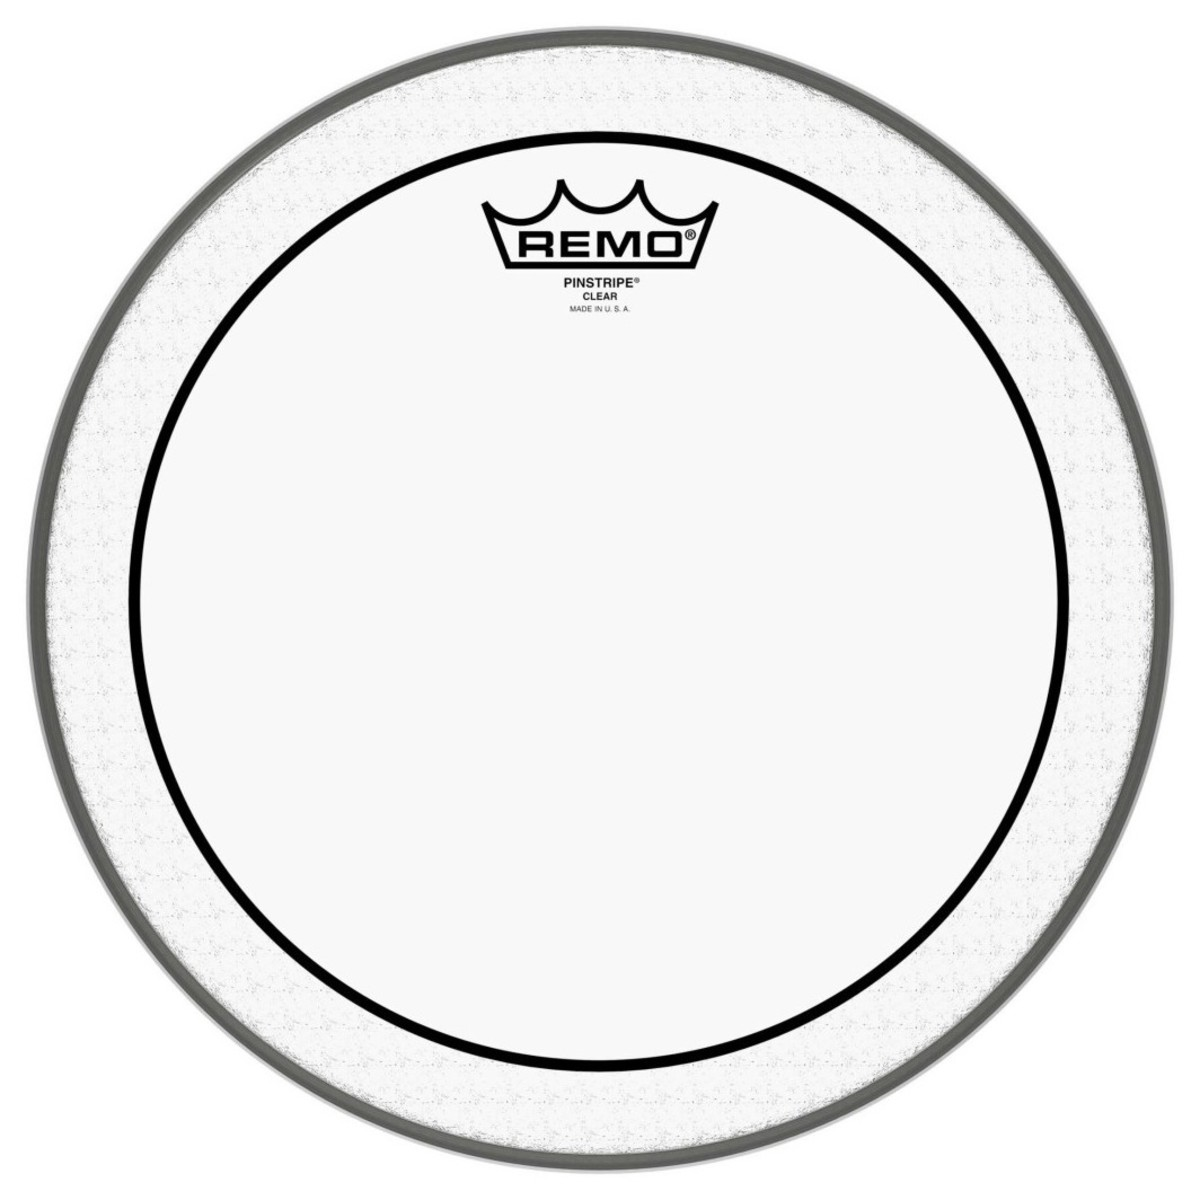 Remo Pinstripe Clear 20 Bass Drum Head